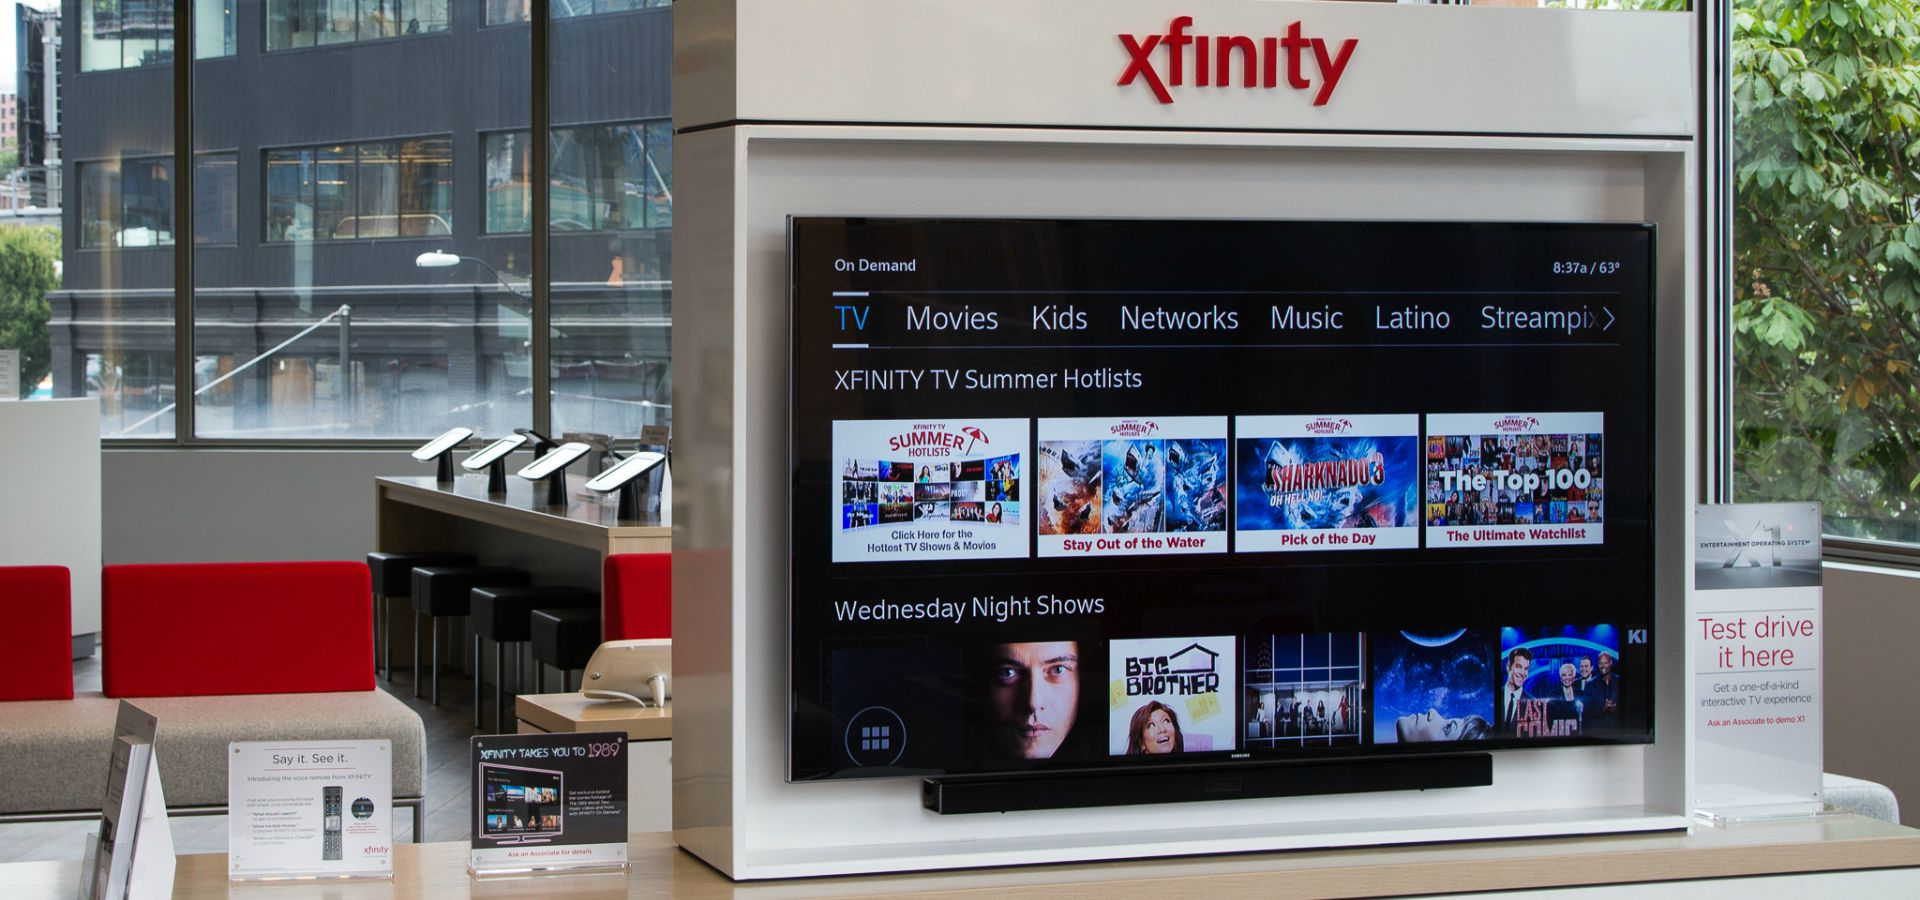 Xfinity Xfinity Discover South Lake Union